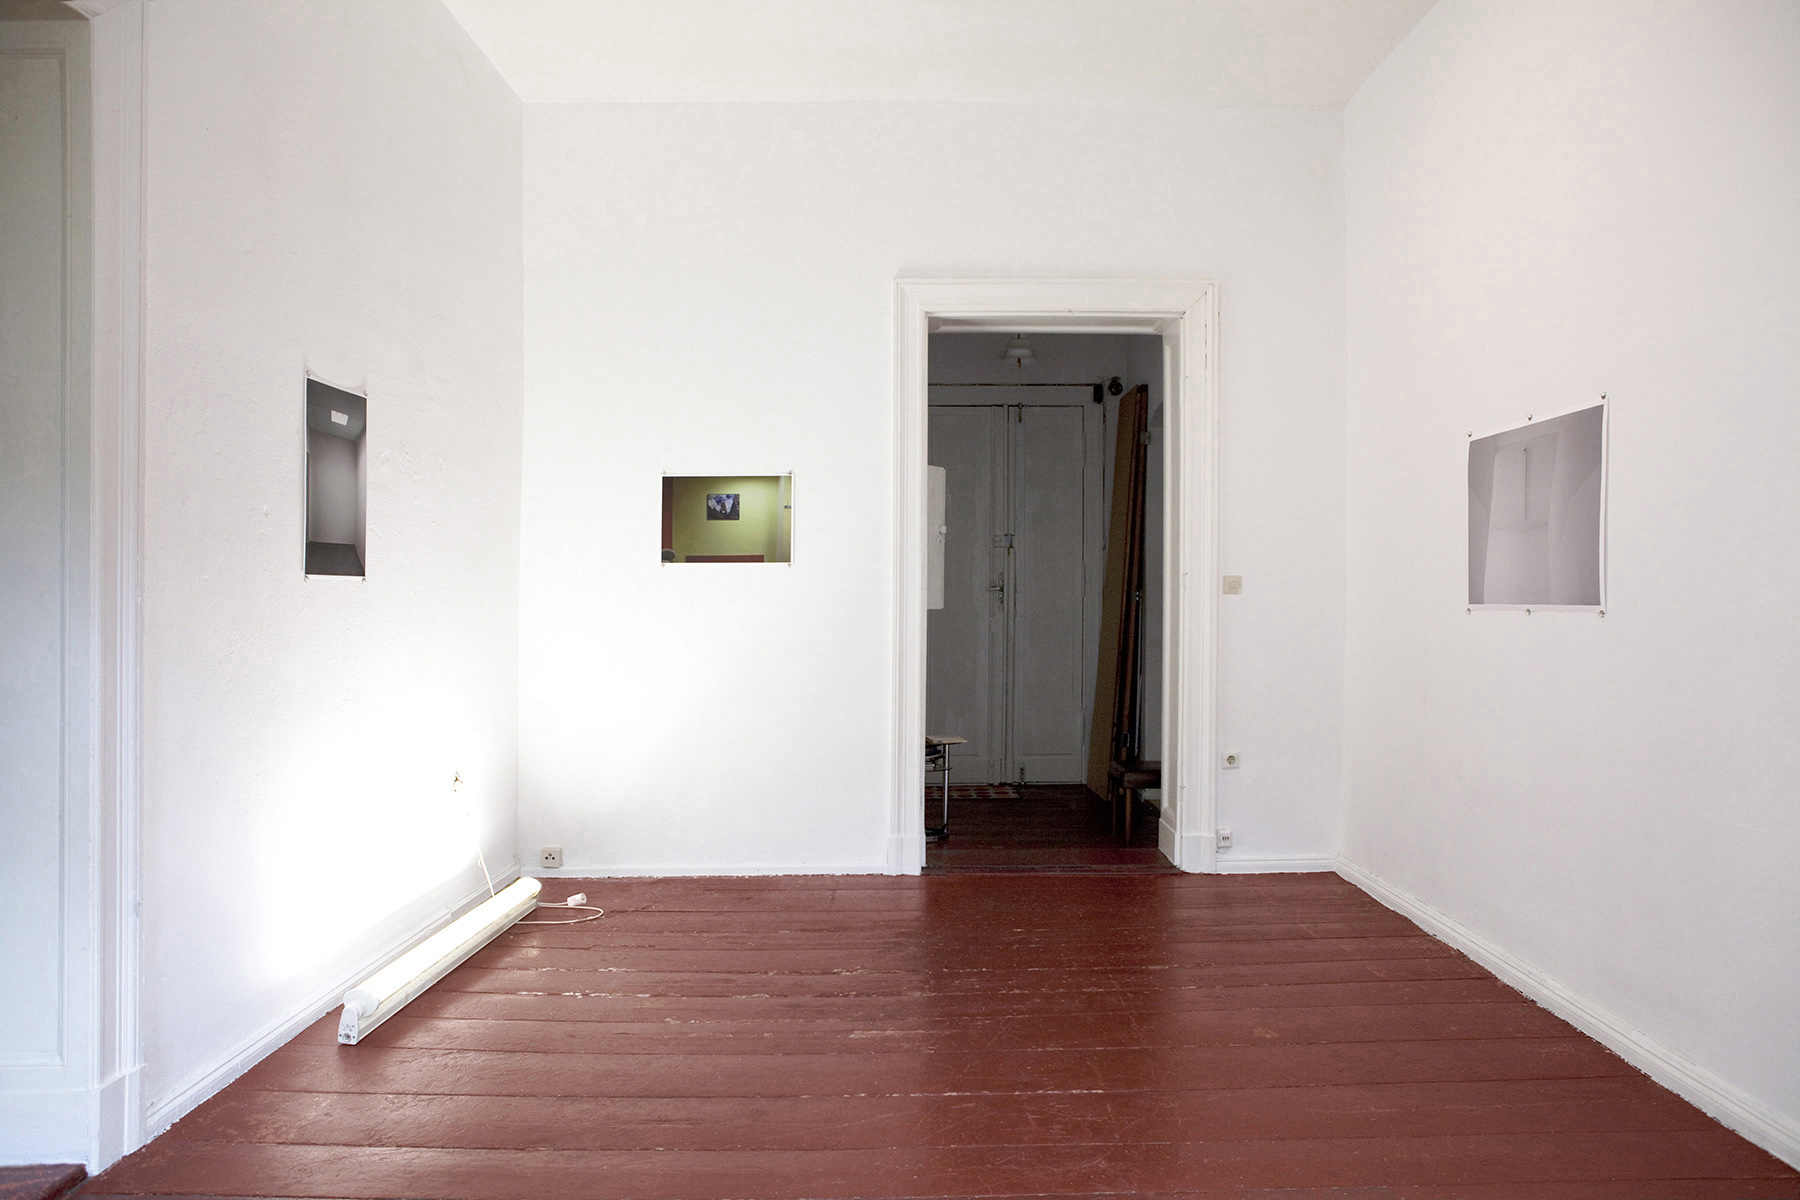 Chris Drange, Christoph David Drange, The Tourist, Salon X, Installation view, exhibition